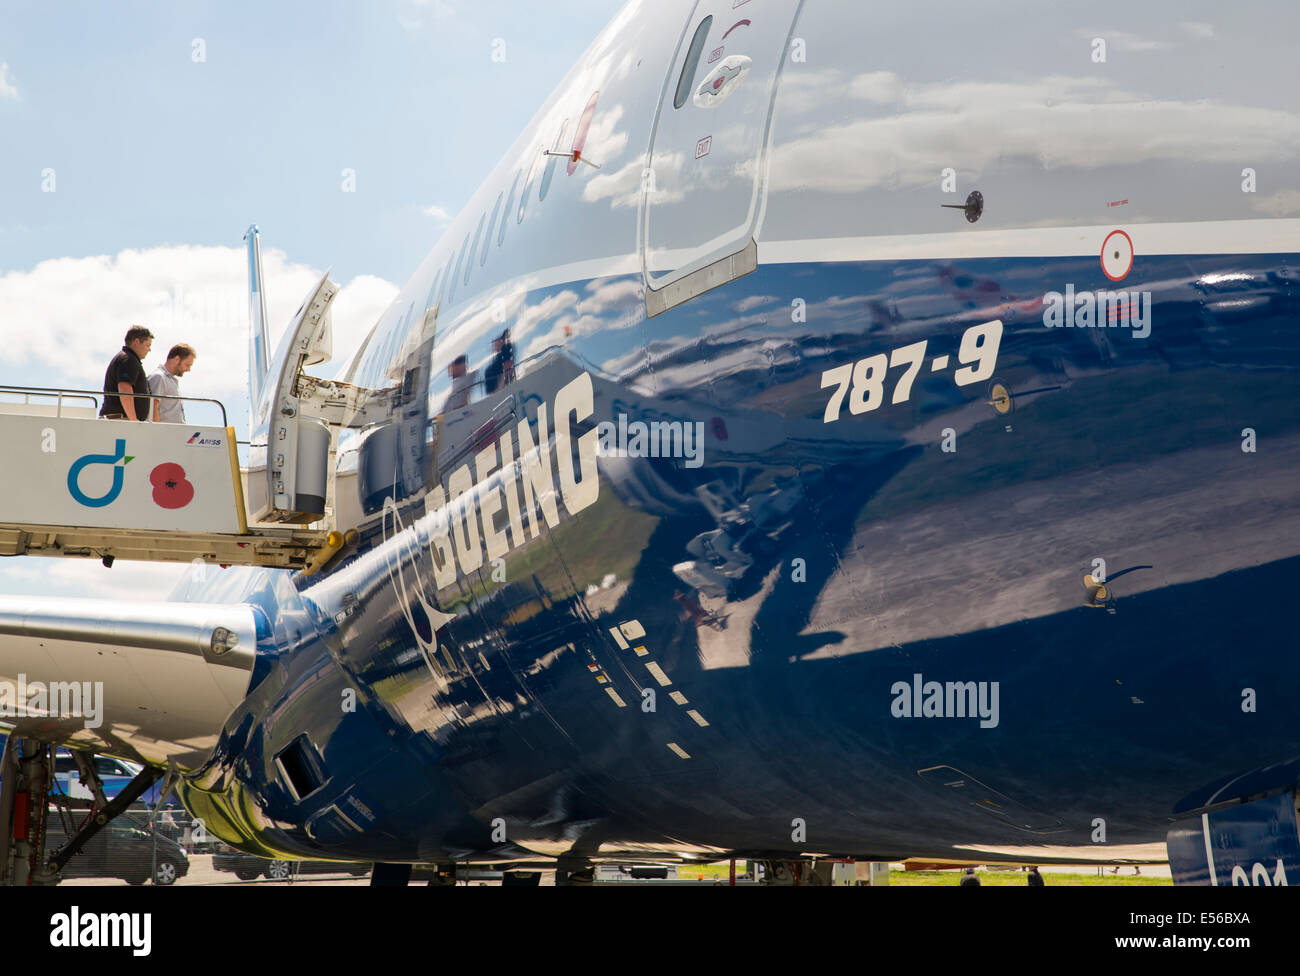 Boeing 787 9 Stock Photos & Boeing 787 9 Stock Images - Page 3 - Alamy